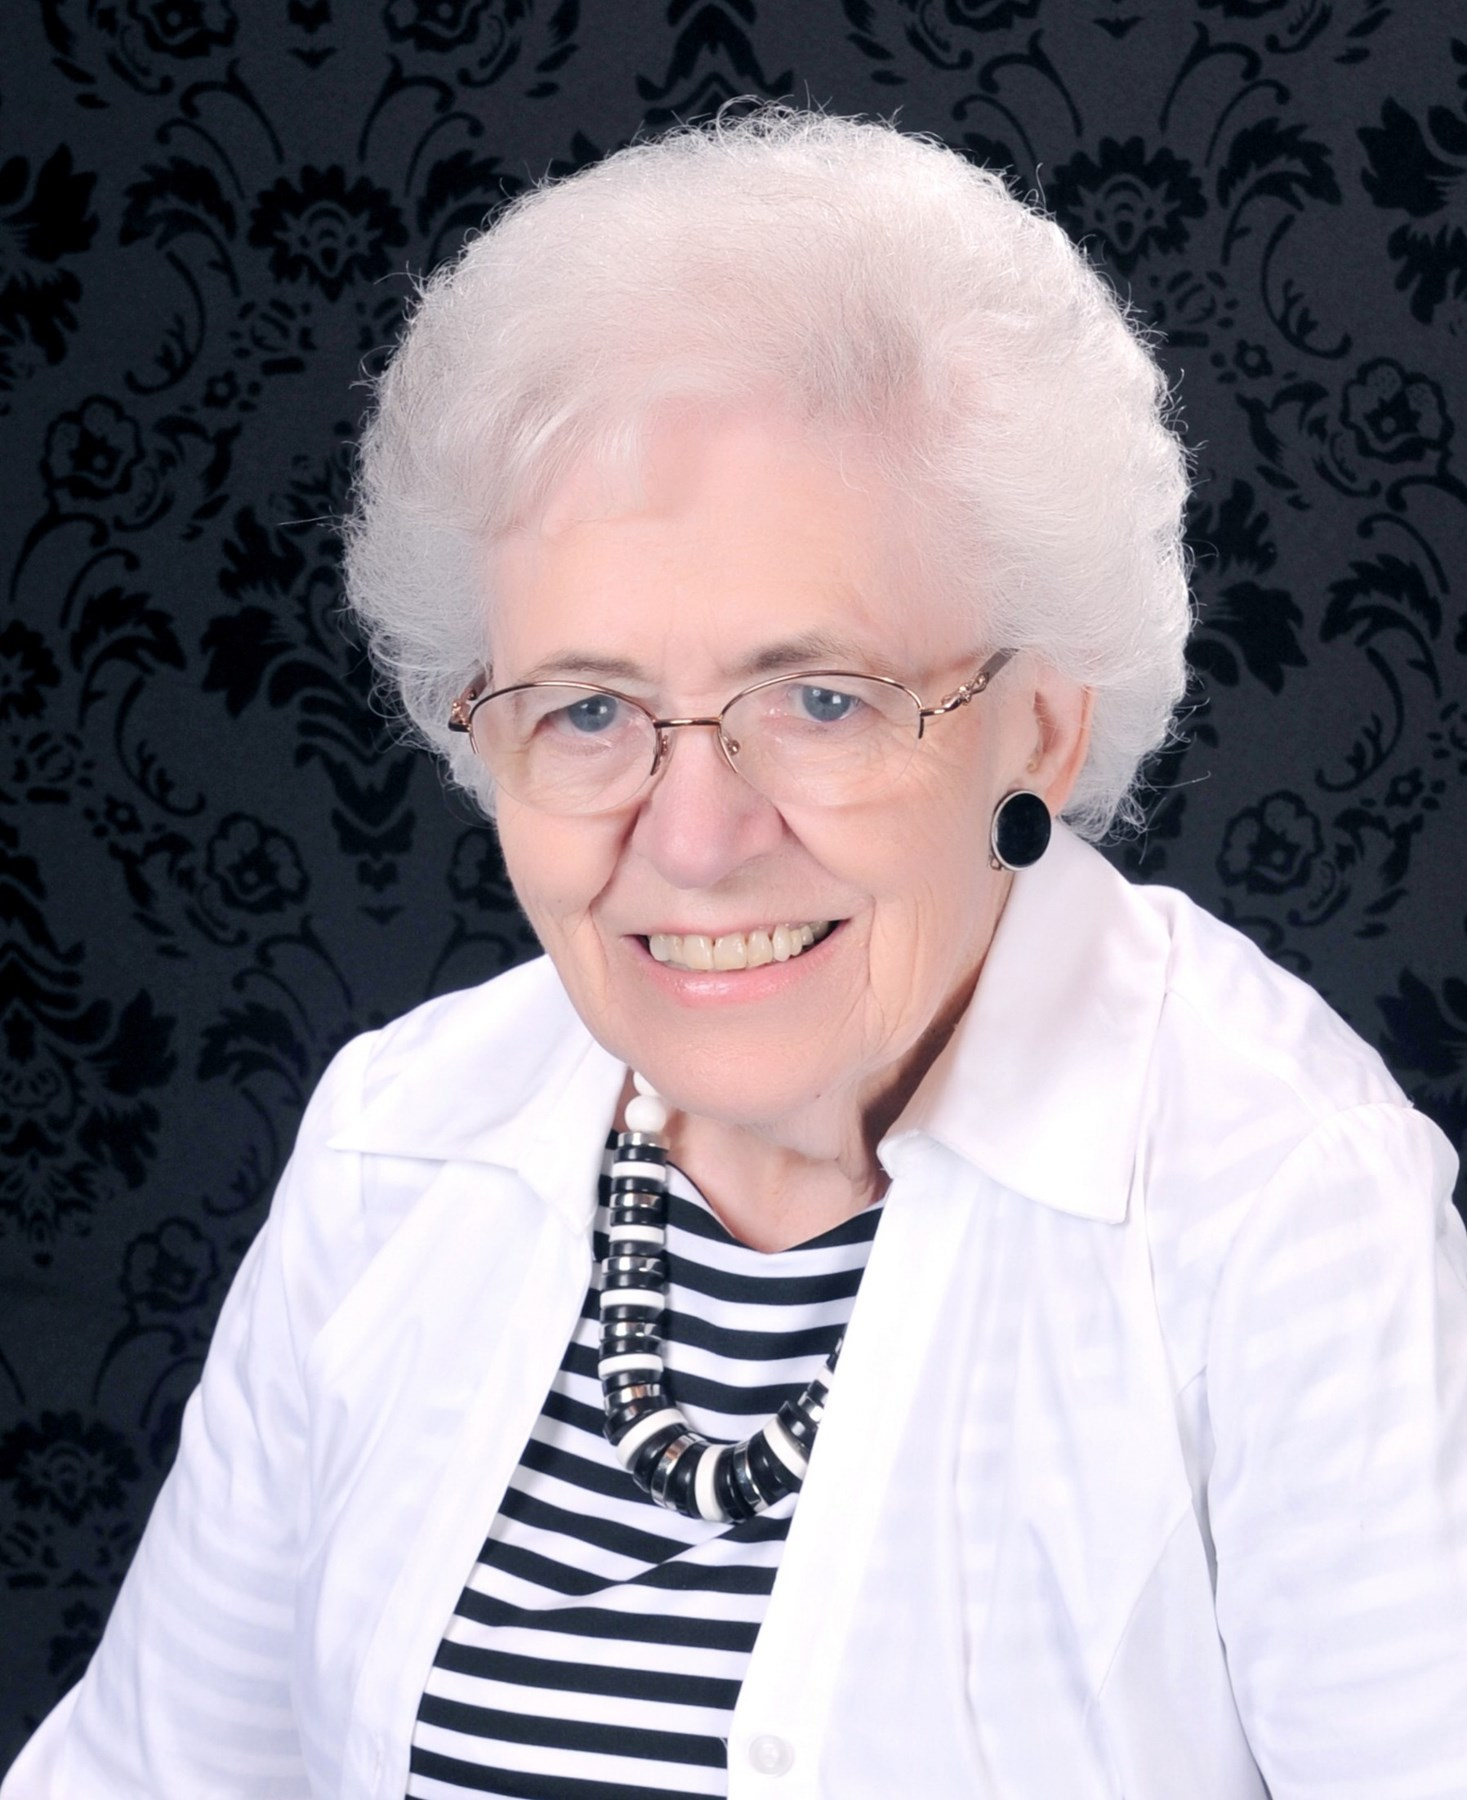 Lou Jean Saunders Wiggins Obituary - West Valley City, UT